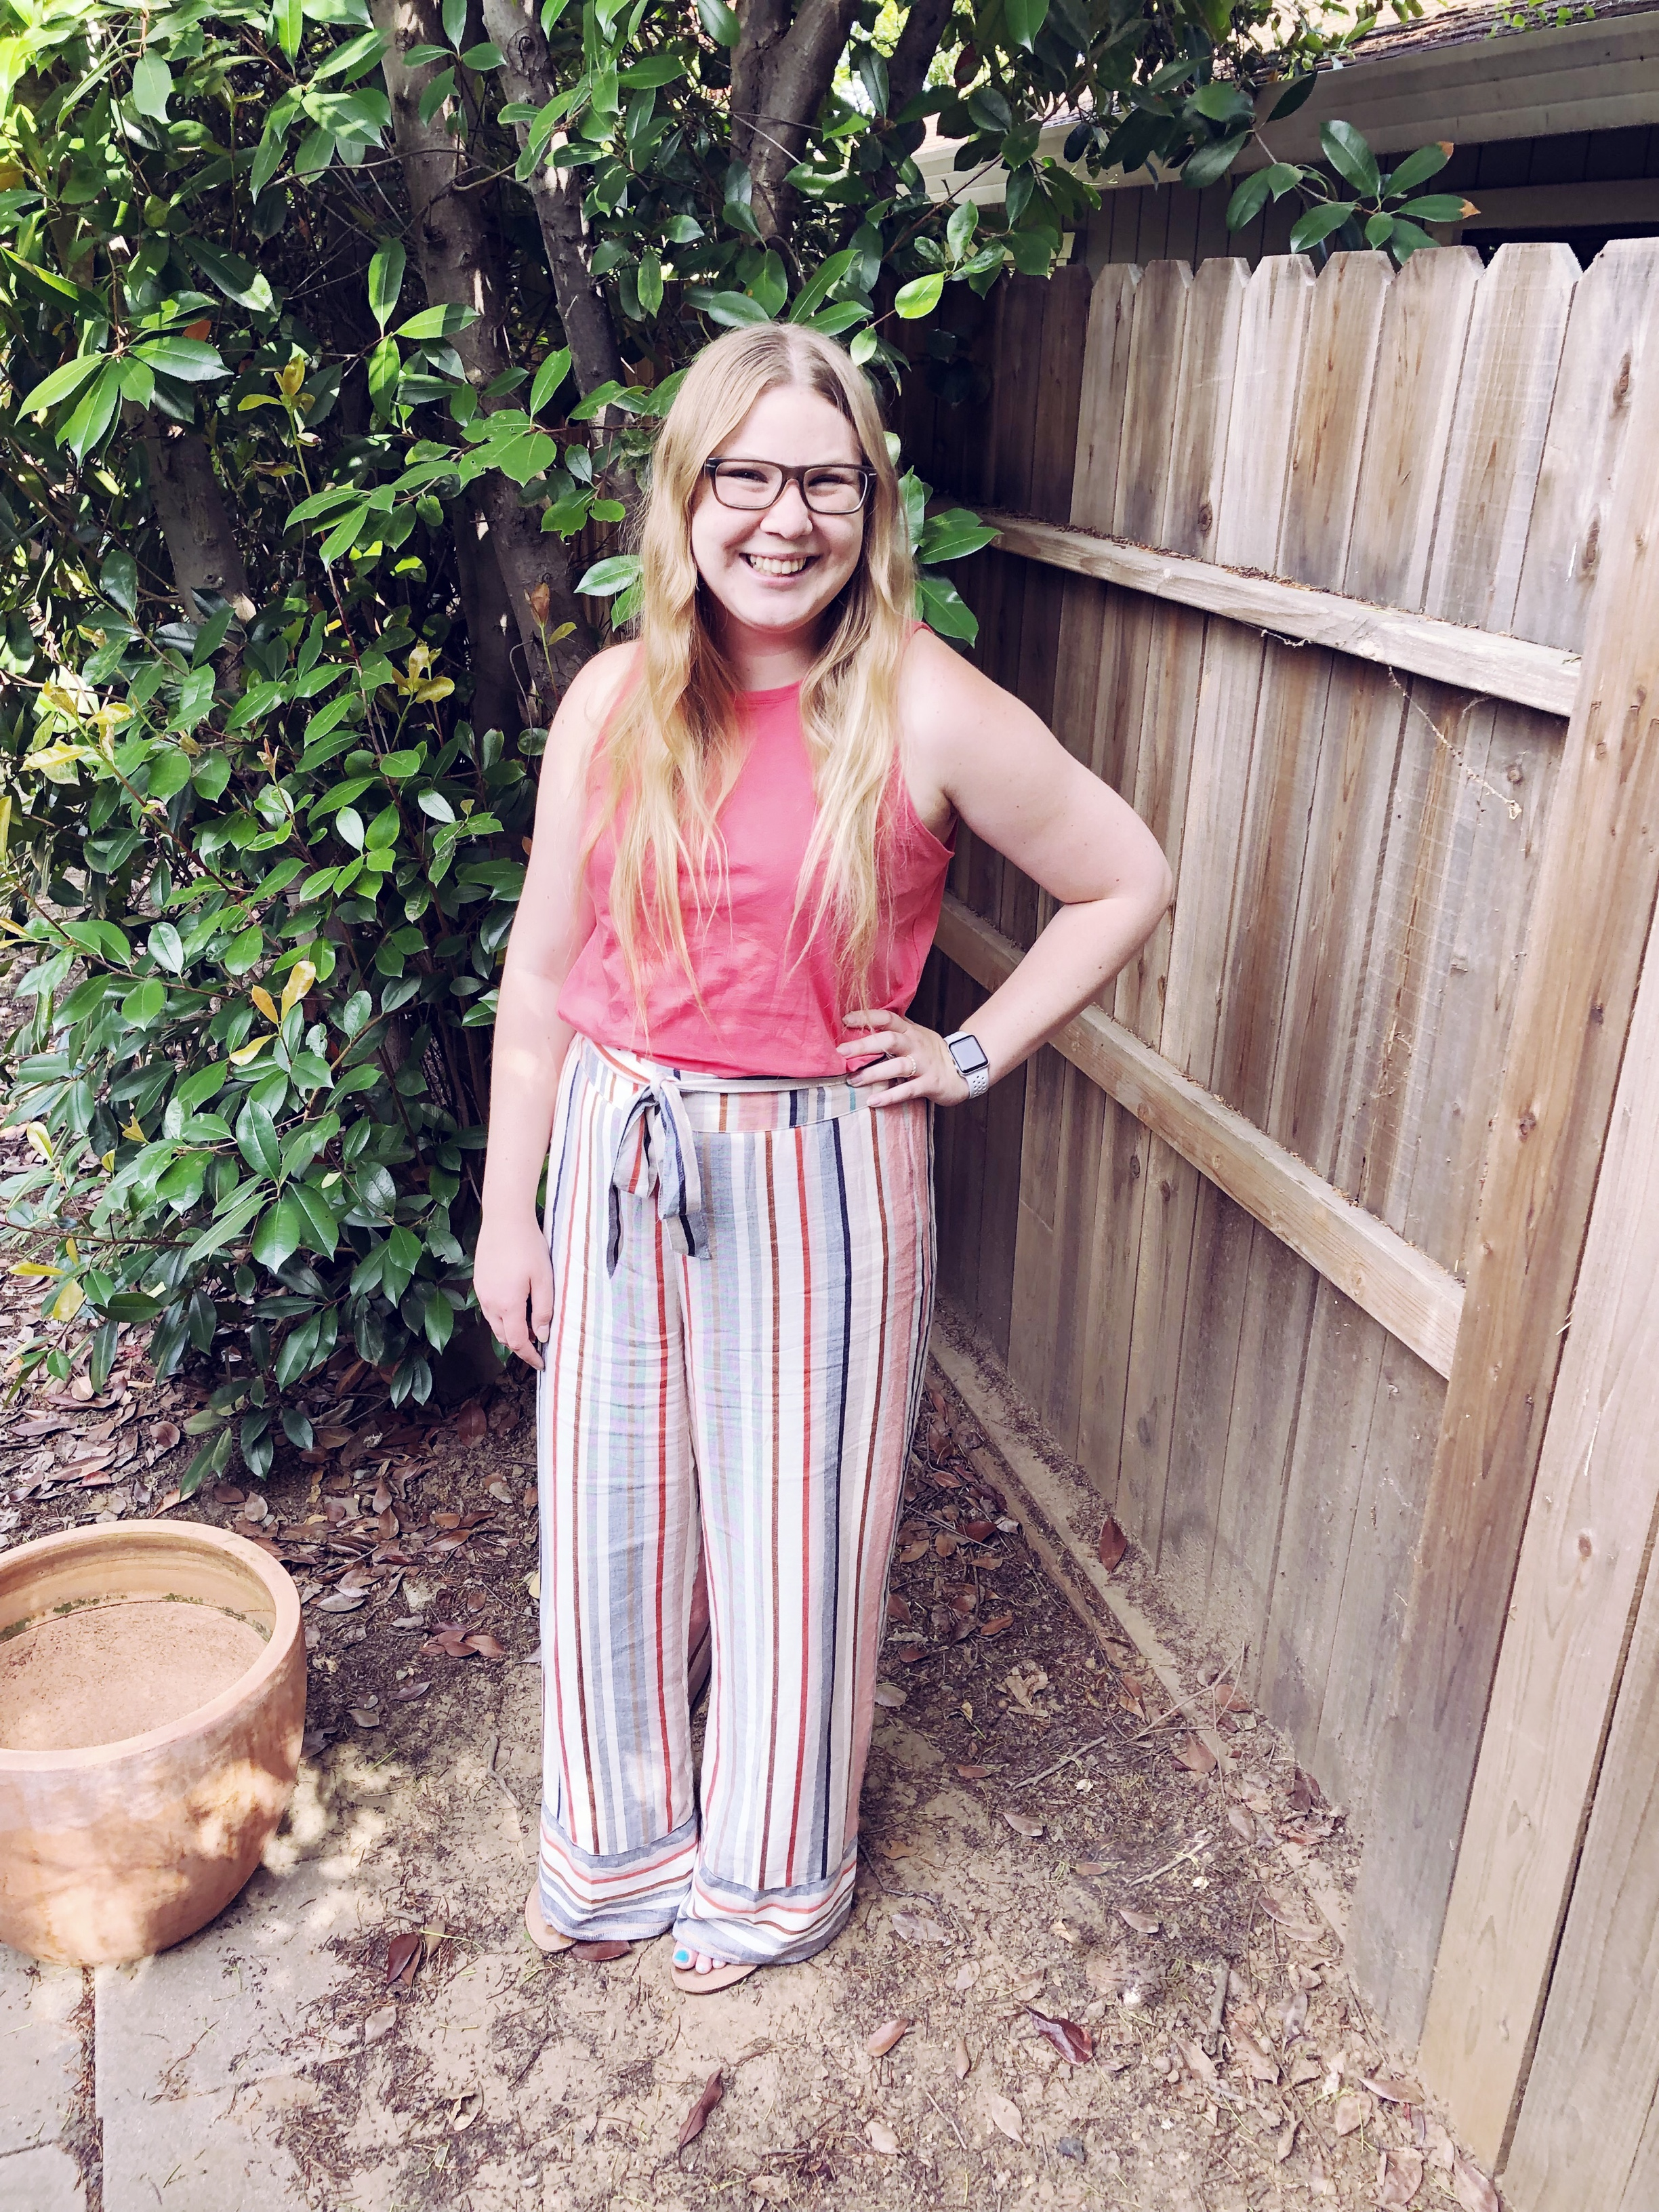 Express Wide Leg Pants.   Loving these summery striped pants from Express! Use my code 8482 at checkout to receive 15% off your purchase at Express. *exclusions apply.  #expresspartner   *Sponsored post*